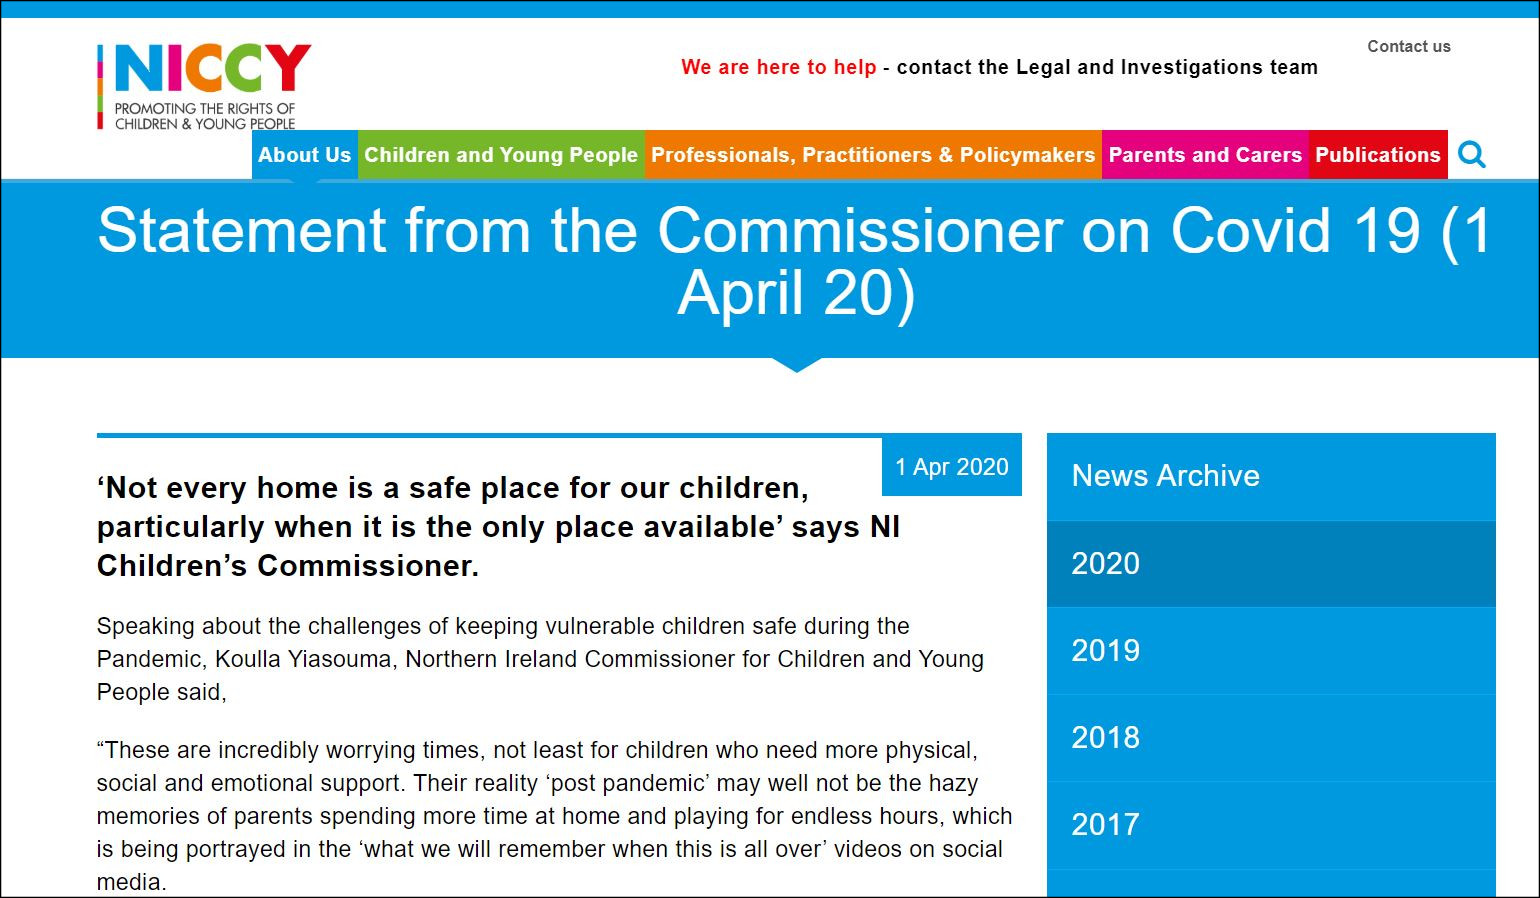 Image of Statement from the Commissioner on Covid 19 (1 April 20)